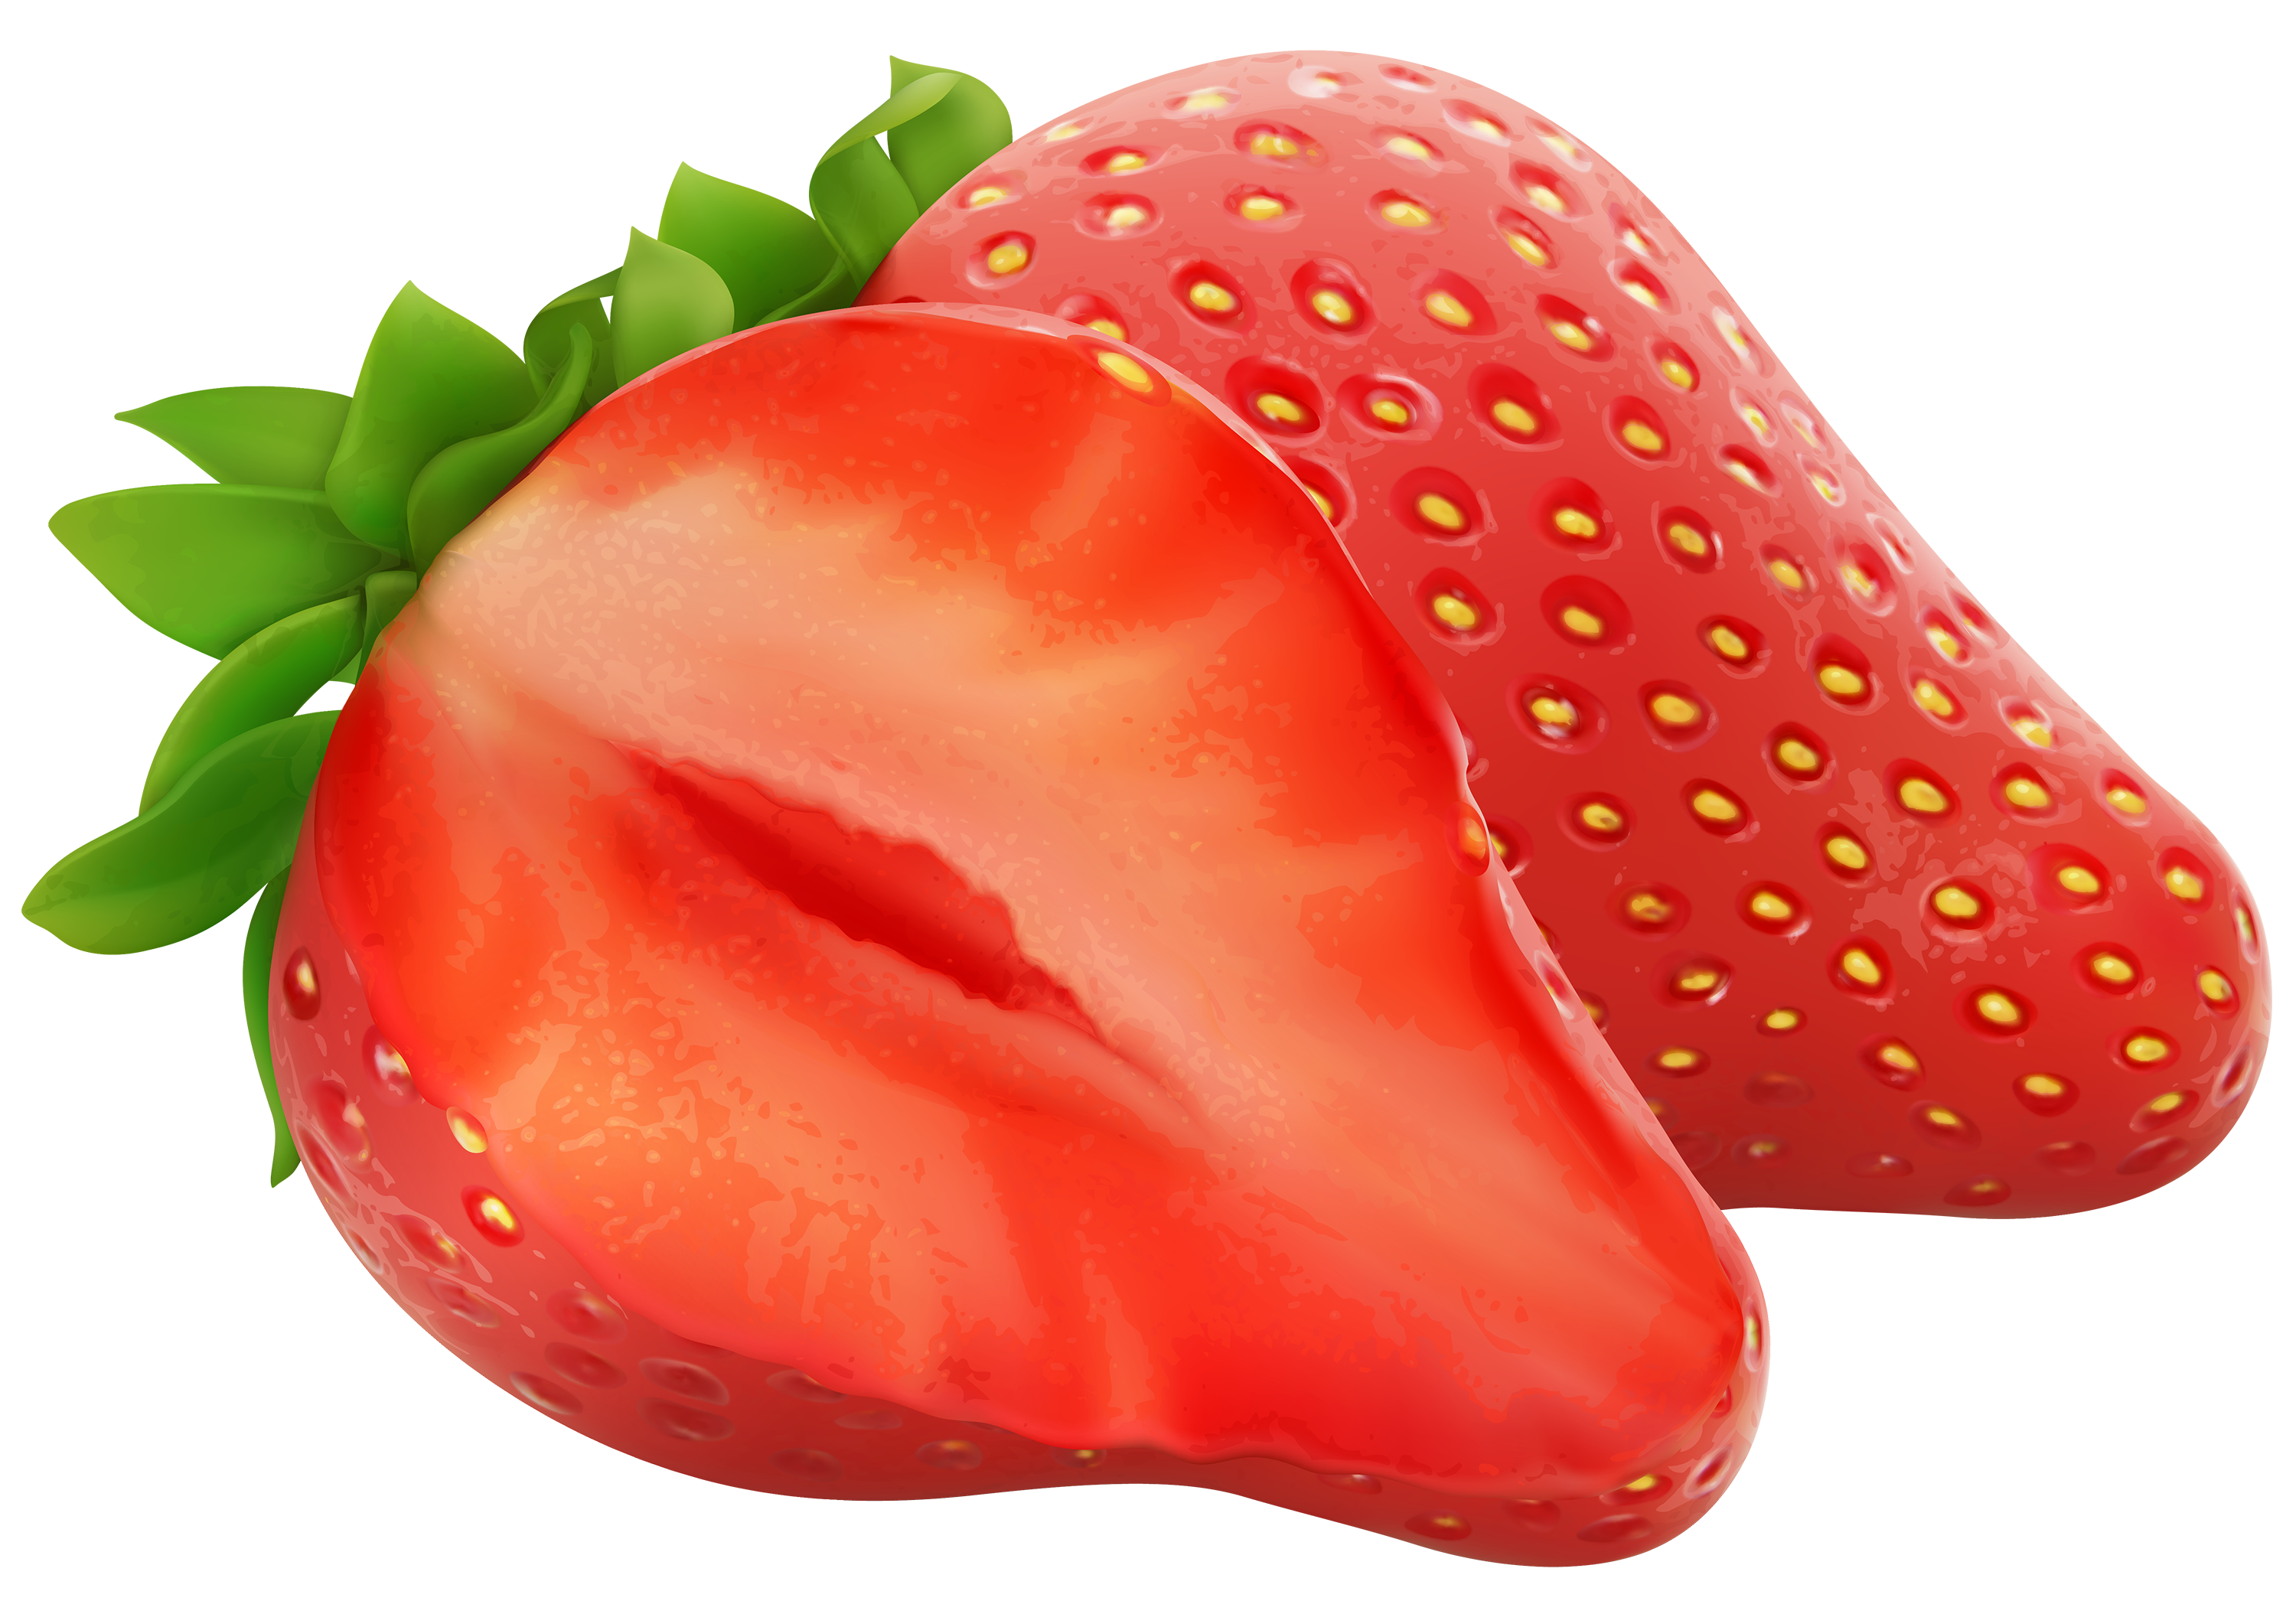 Strawberries clipart orange. Png best web